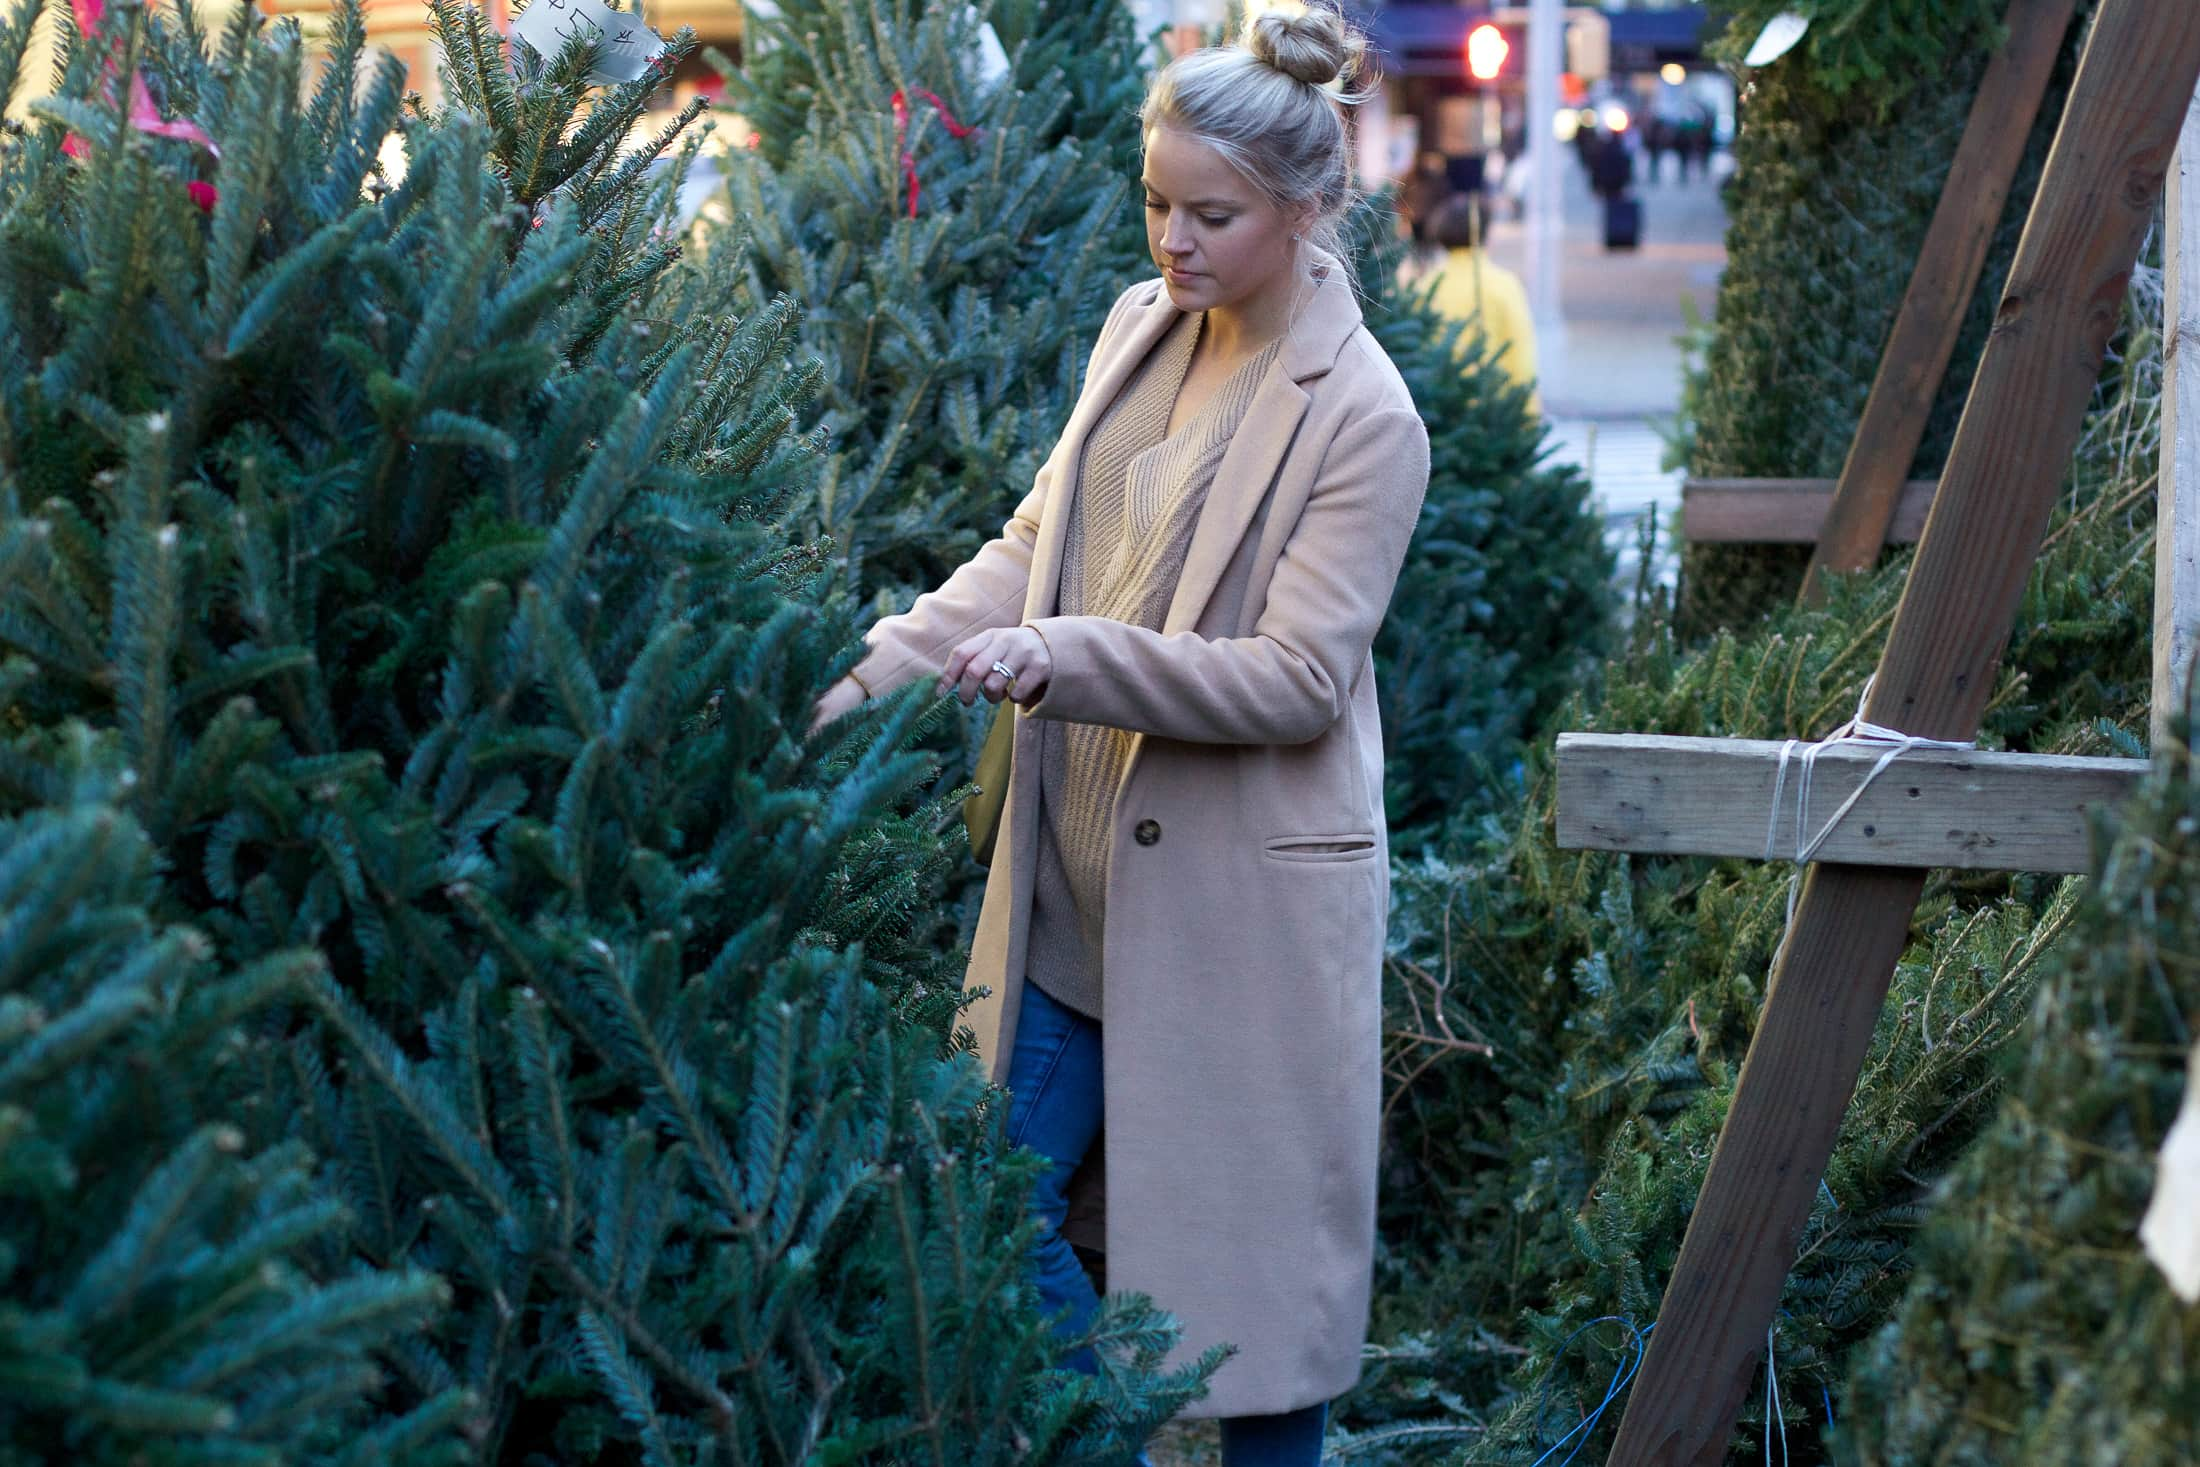 christmas trees in new york city, top knot, long coat